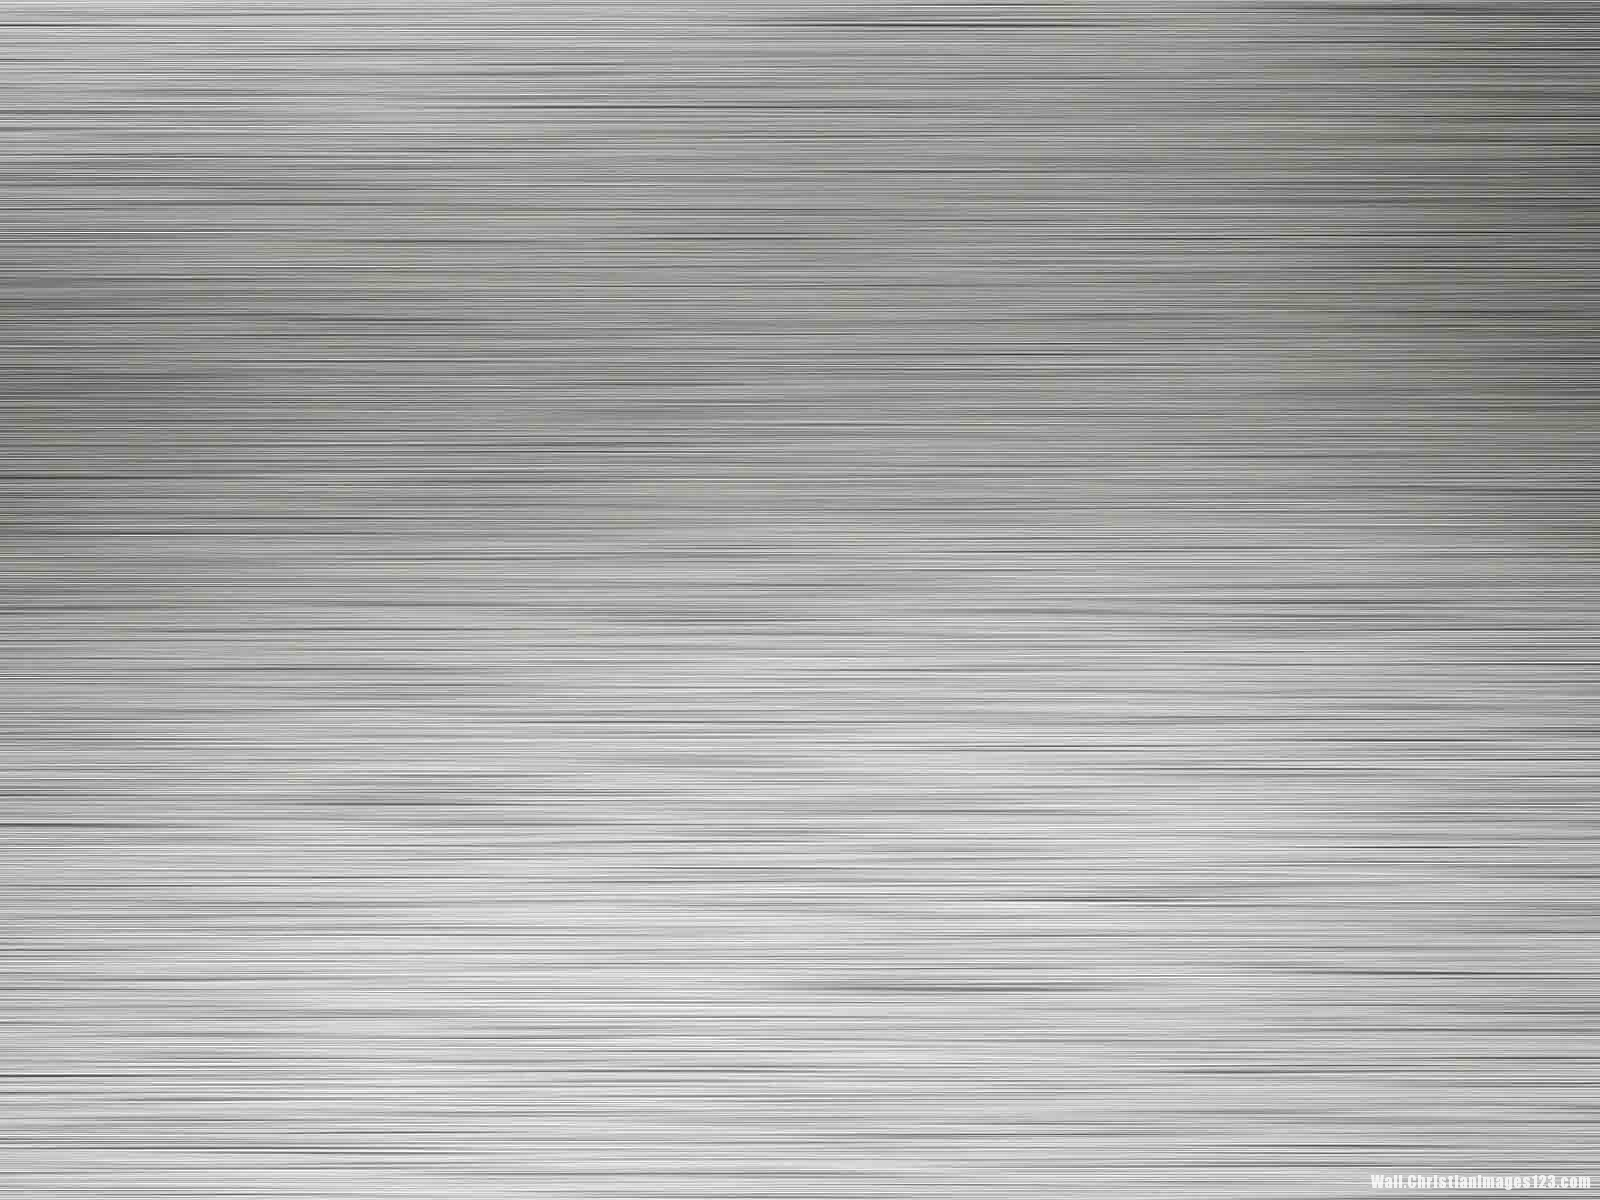 Silver Metal Texture Powerpoint Background – Wall